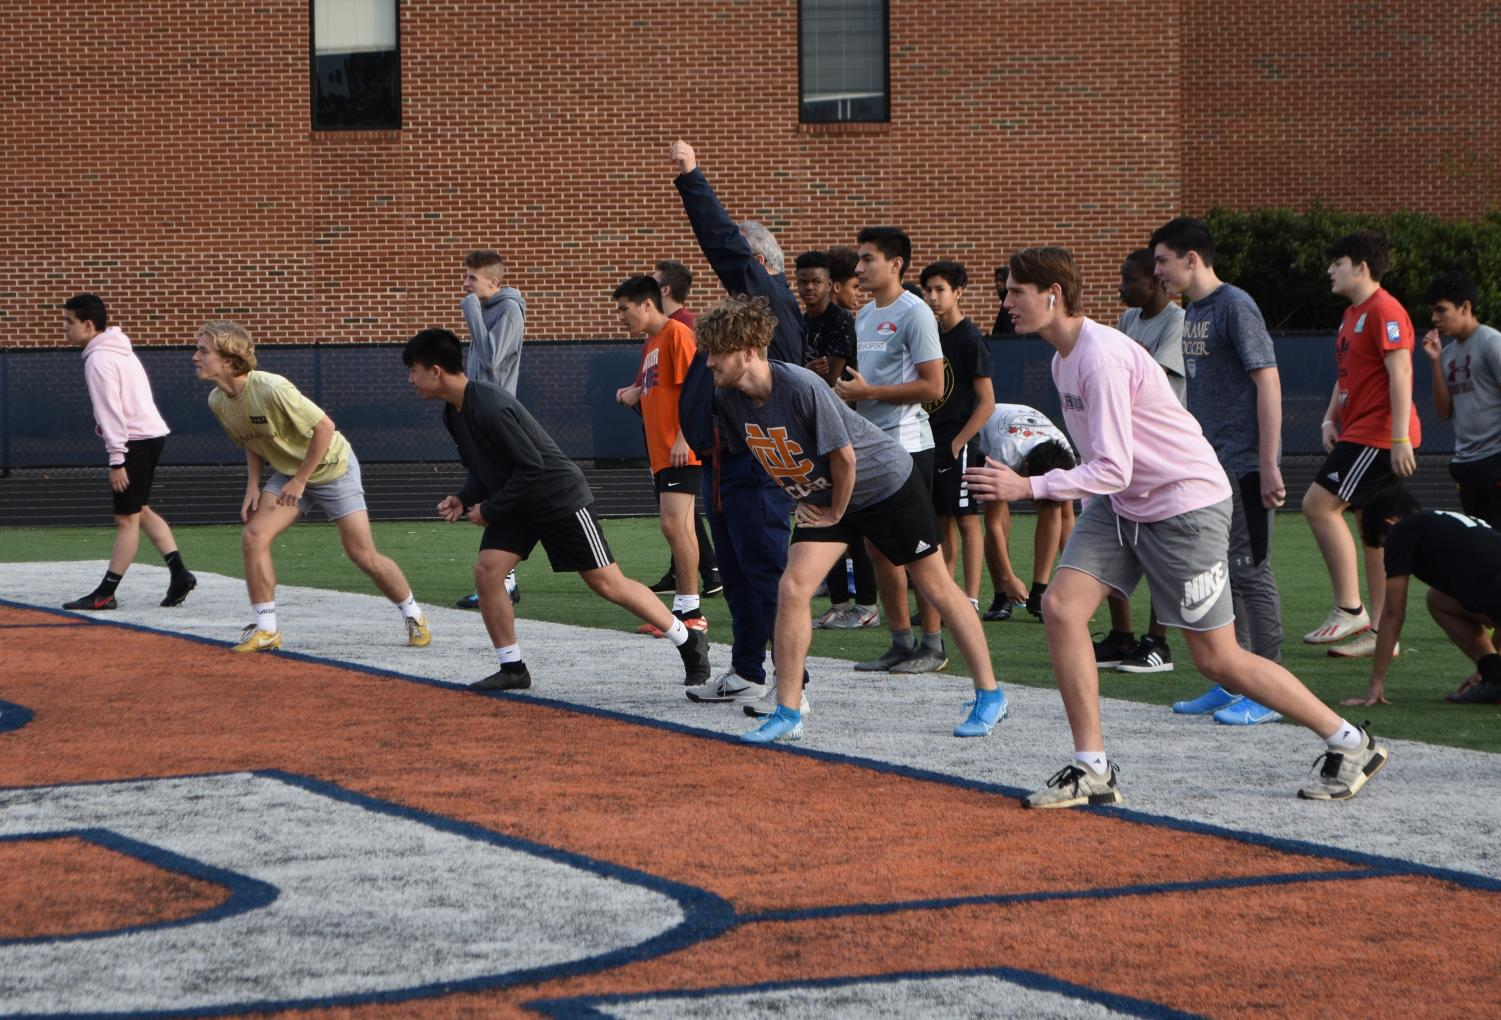 """Conditioning consisted of a variety of drills that focused on building endurance and improving physical agility. """"These drills allow the coaches to see each player's strengths and weaknesses,"""" senior Zoe Kemp said. Players prepared to run 50-yard sprints as Varsity boys Head Coach Panell observed."""